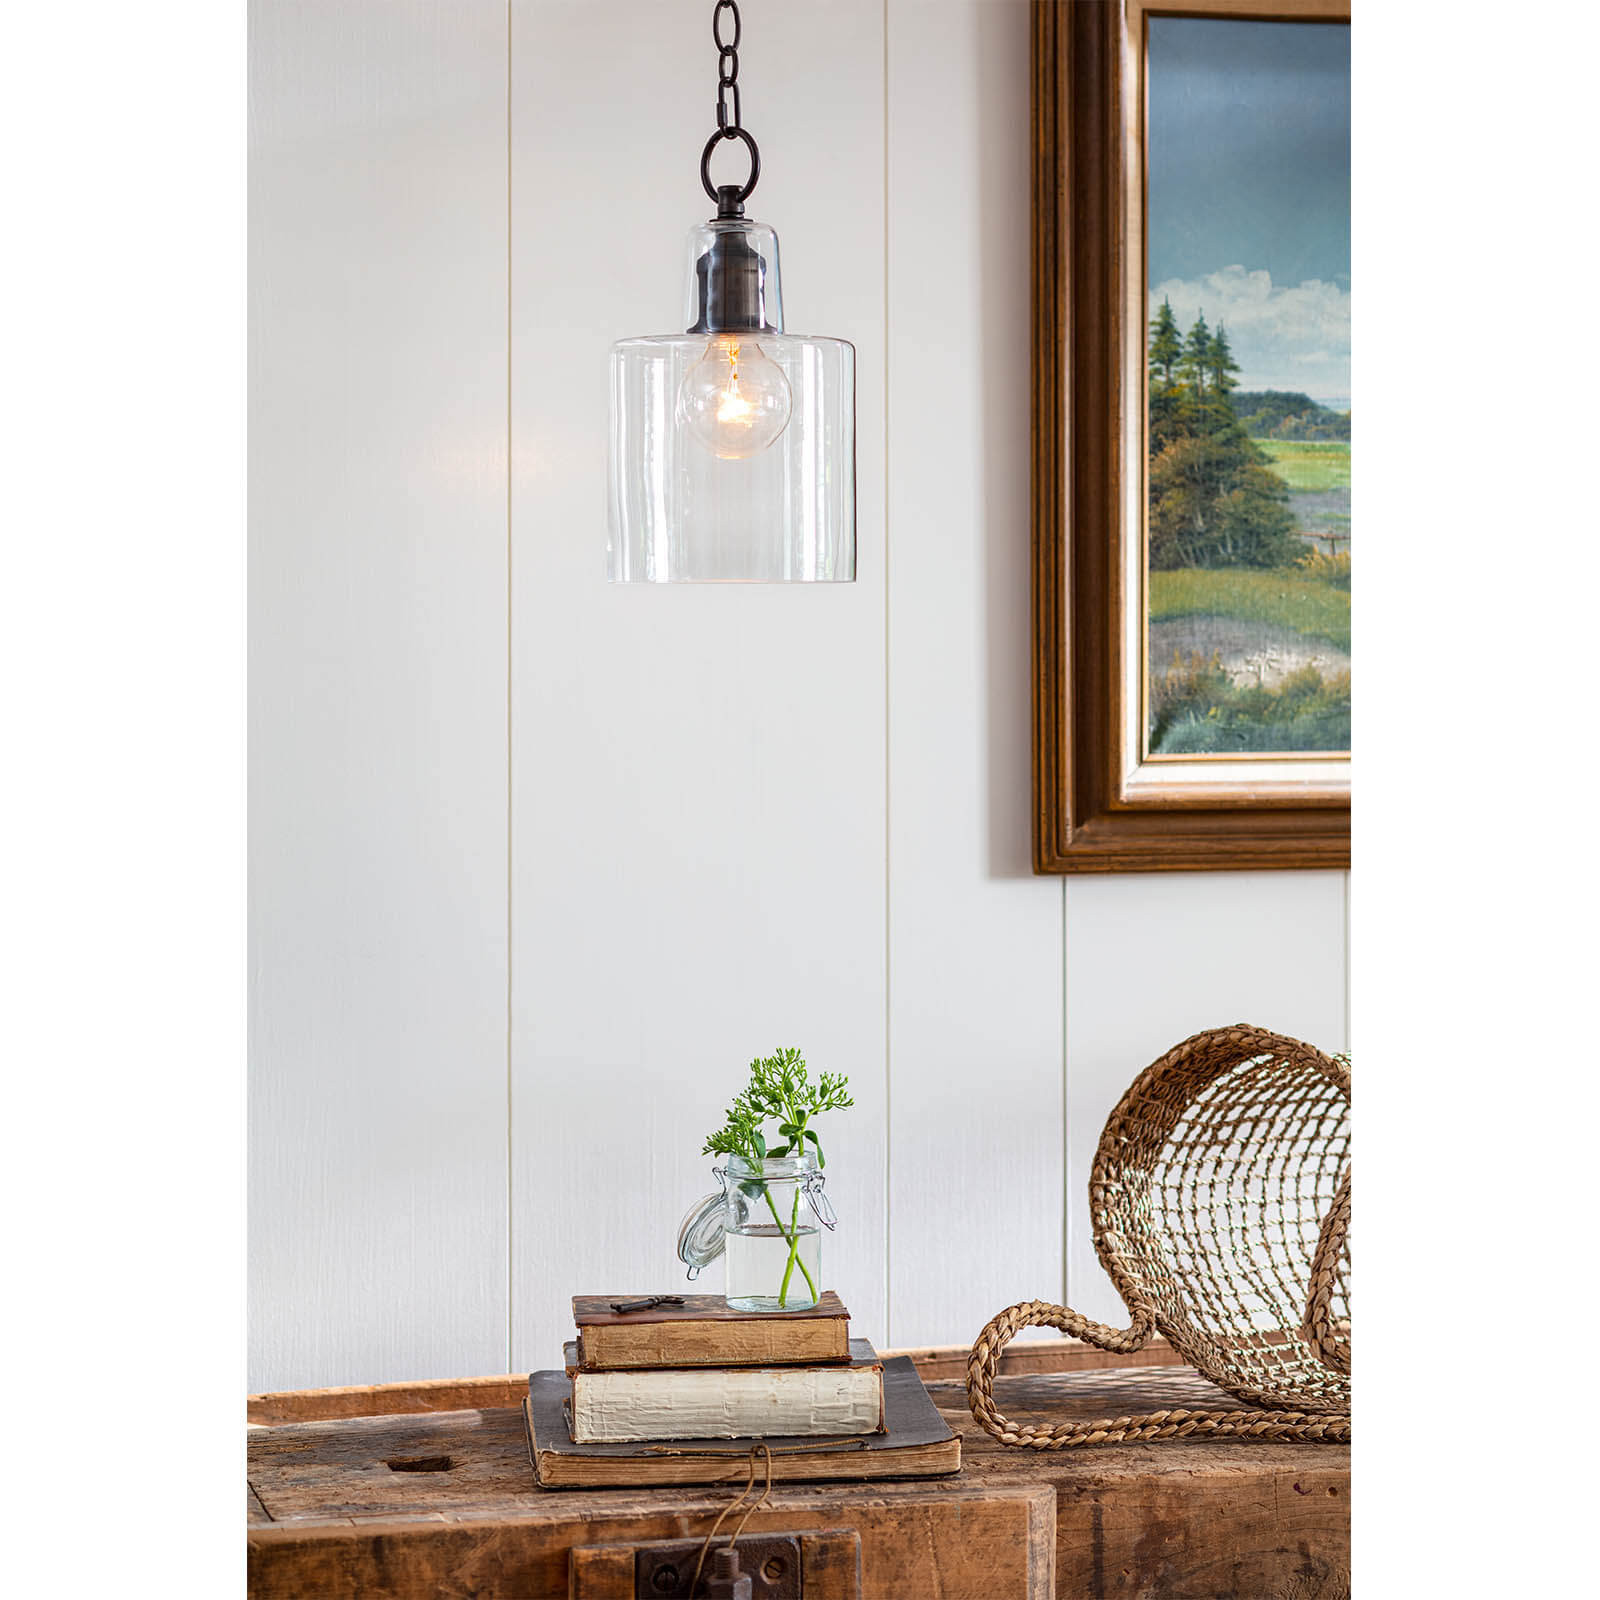 Dutch Glass Pendant Oil Rubbed Bronze | Regina Andrew